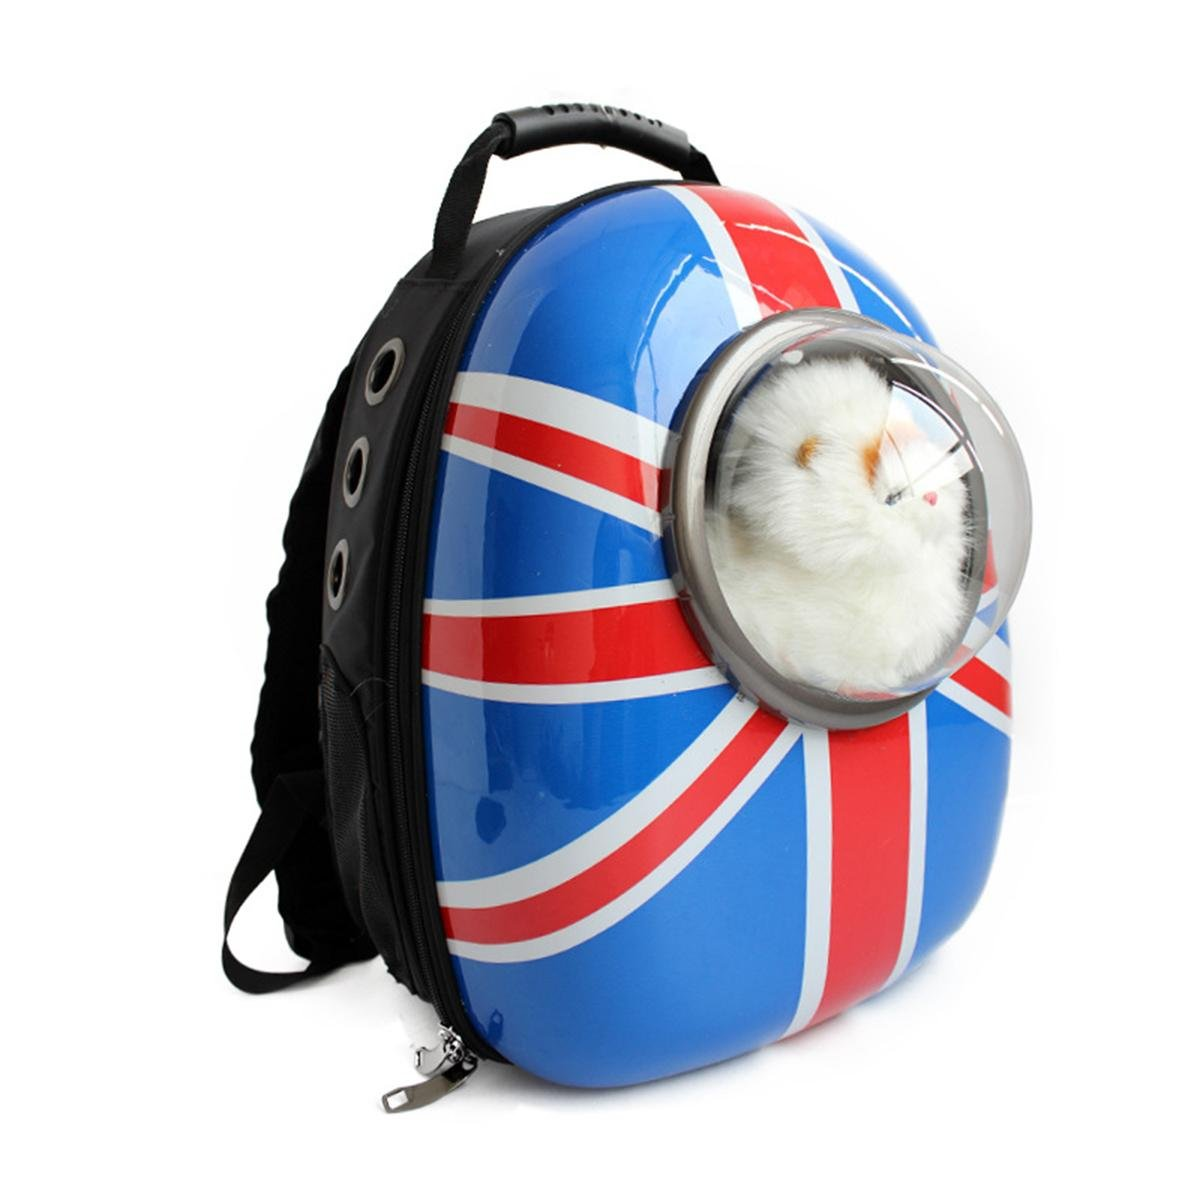 Bubble Pet Carriers Travel Bubble Backpack Airline Approved Bags for Cats and Dogs